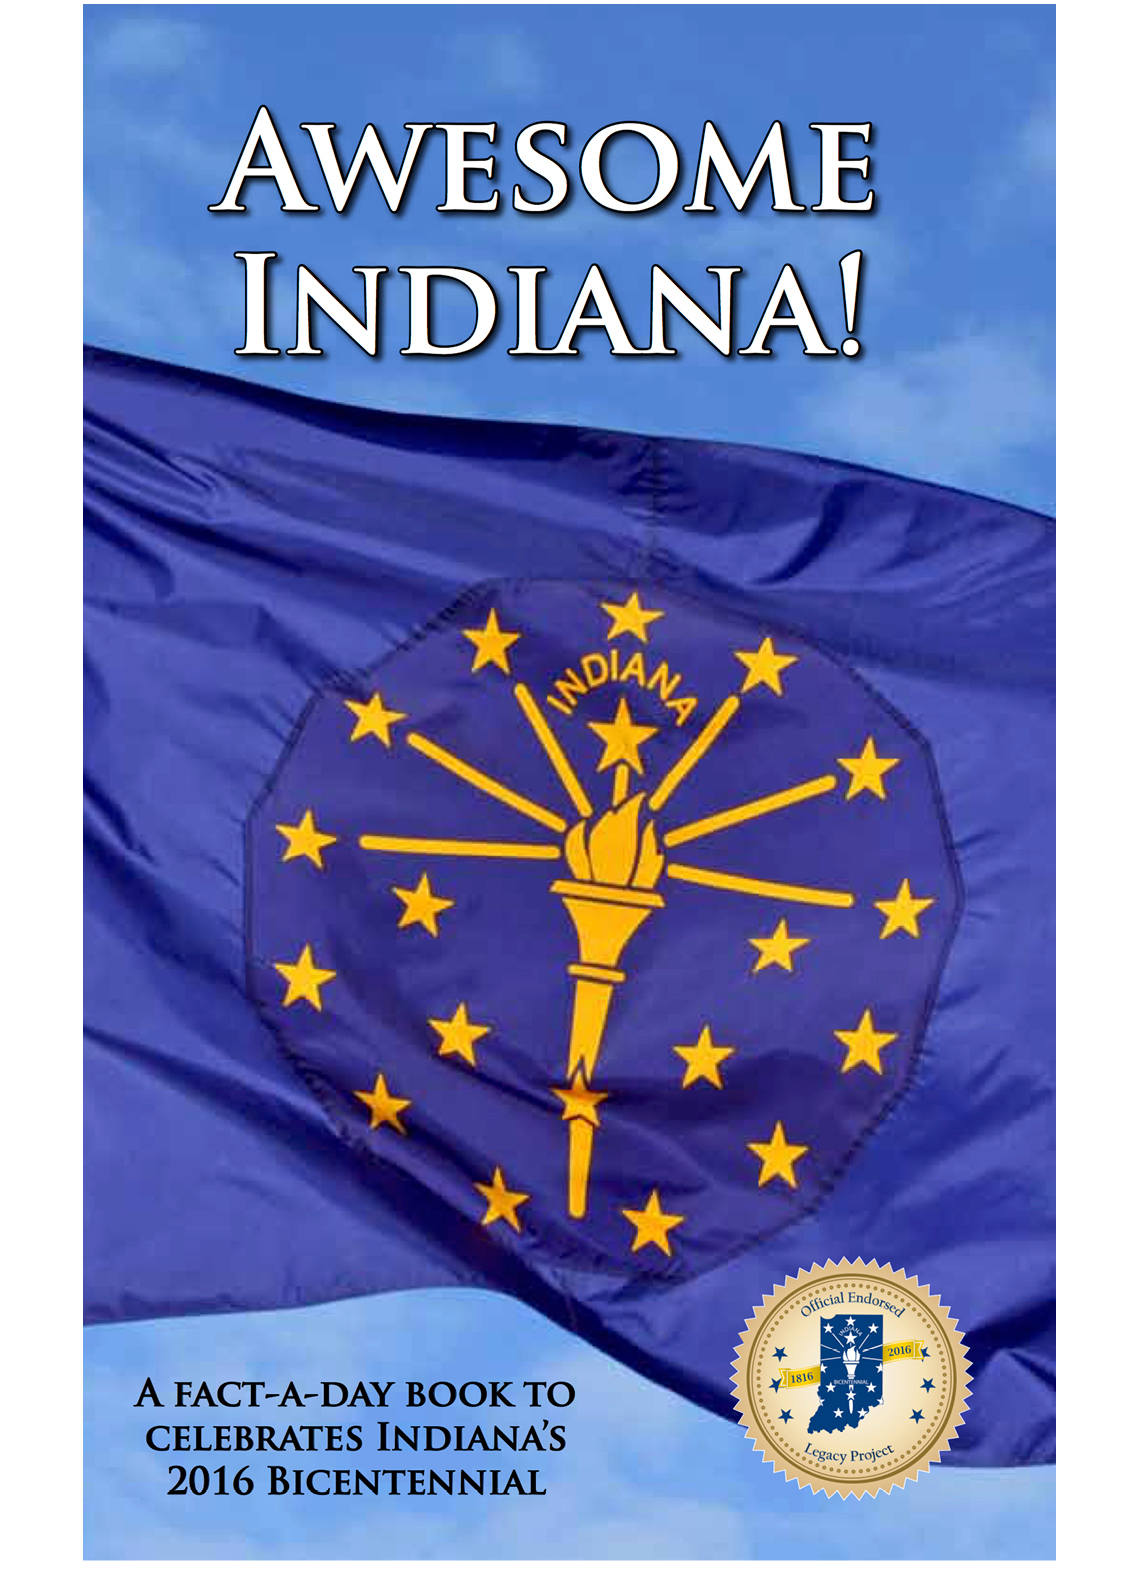 A Factaday Book To Celebrate Indiana's Bicentennial